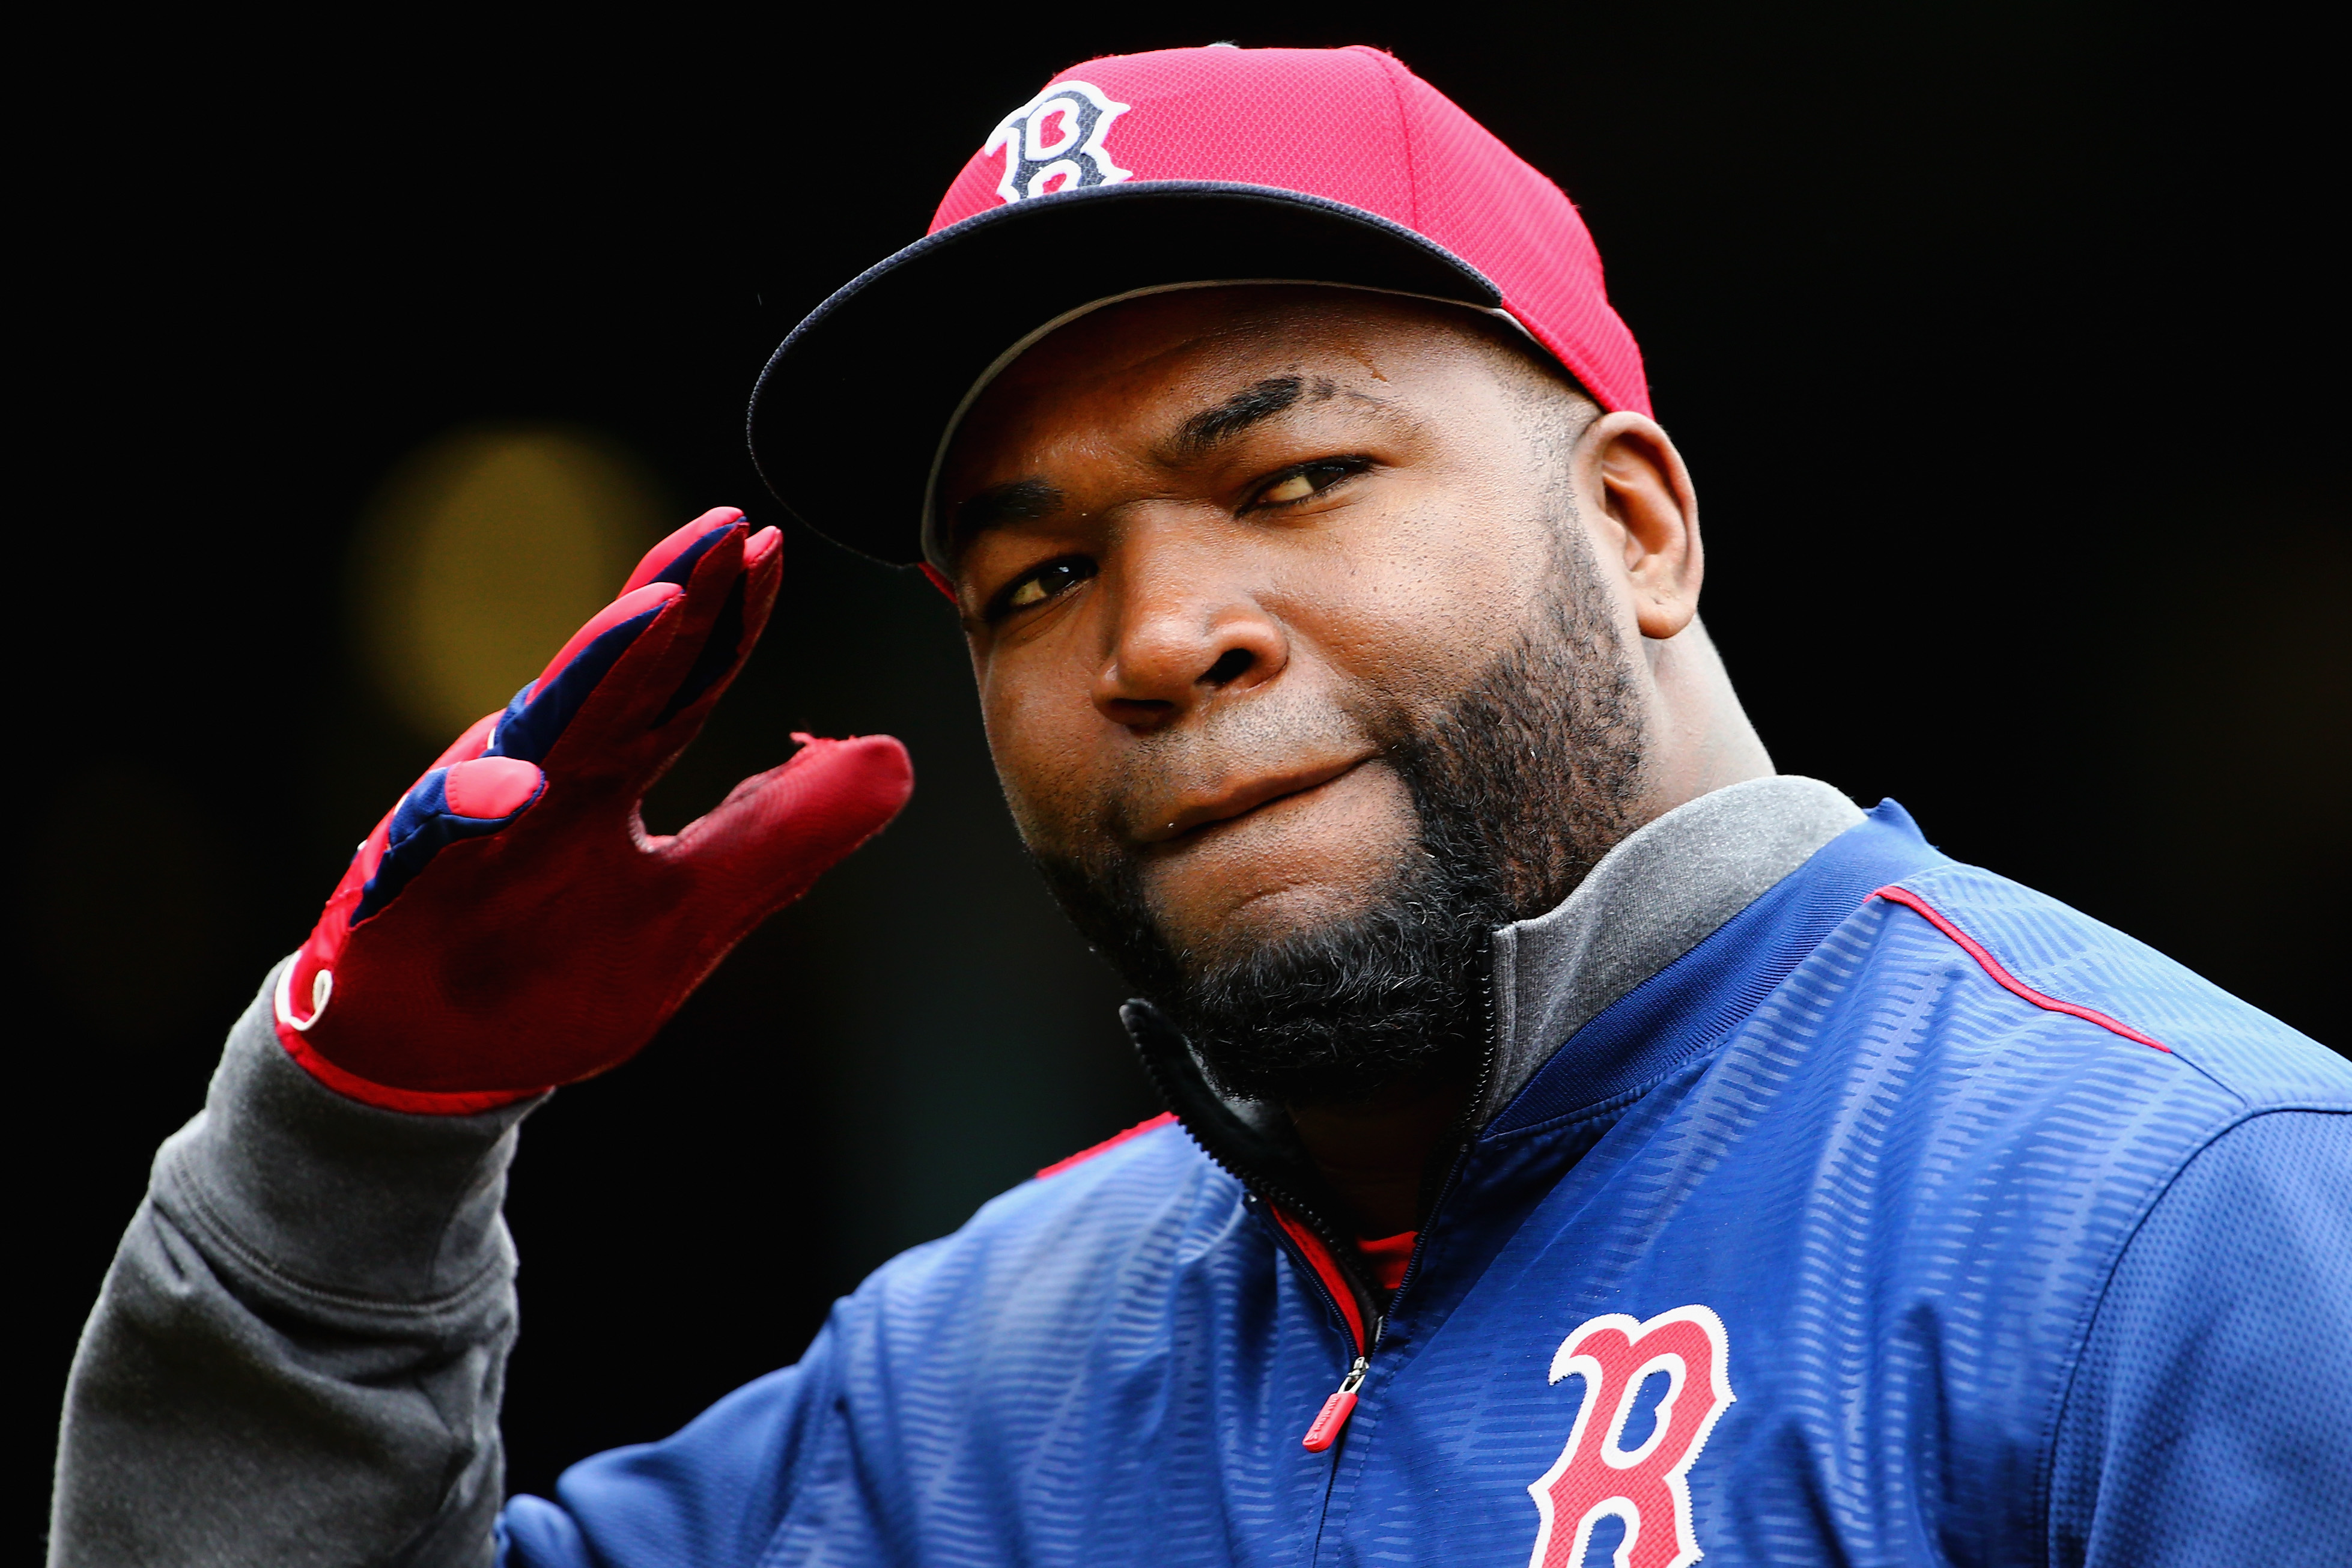 David Ortiz Calls for an End to Femicides During the Premios Soberano